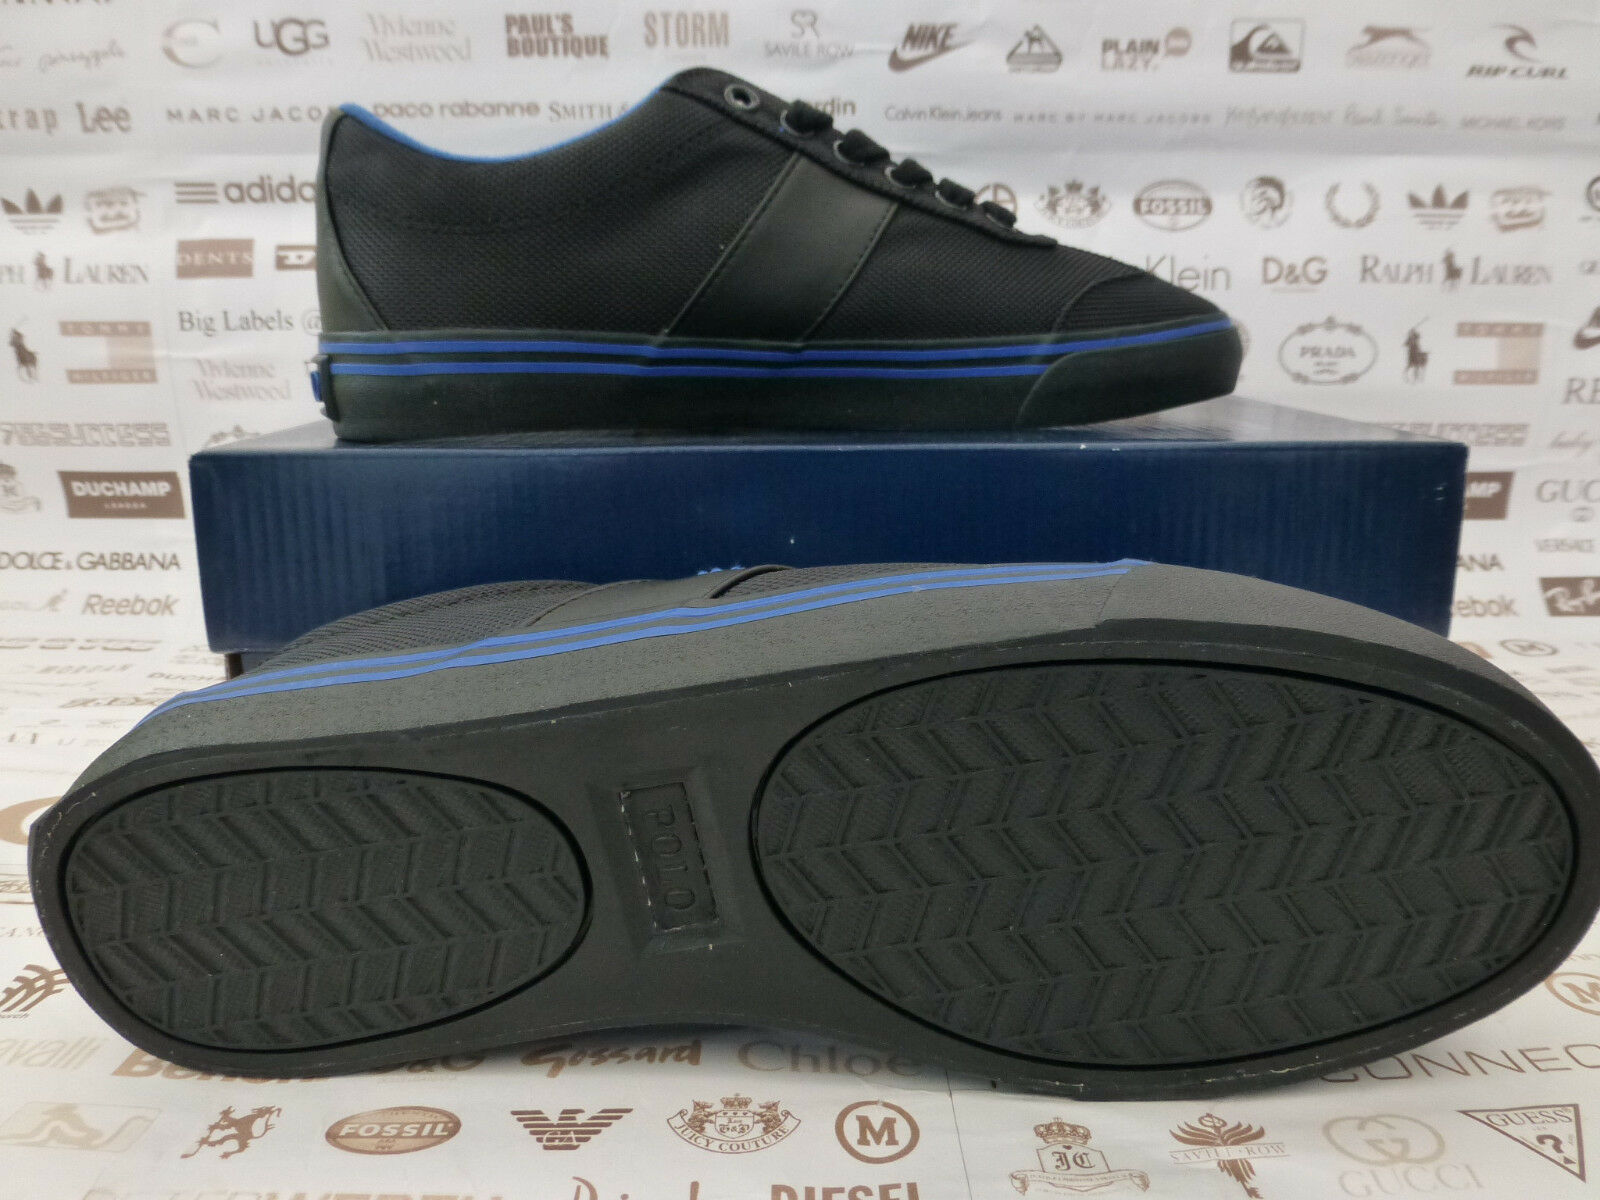 POLO RALPH LAUREN Fabric Sneakers ZEV LOW-NE Black Black Black Trainer UK 7 shoes BNIB R 533bdd